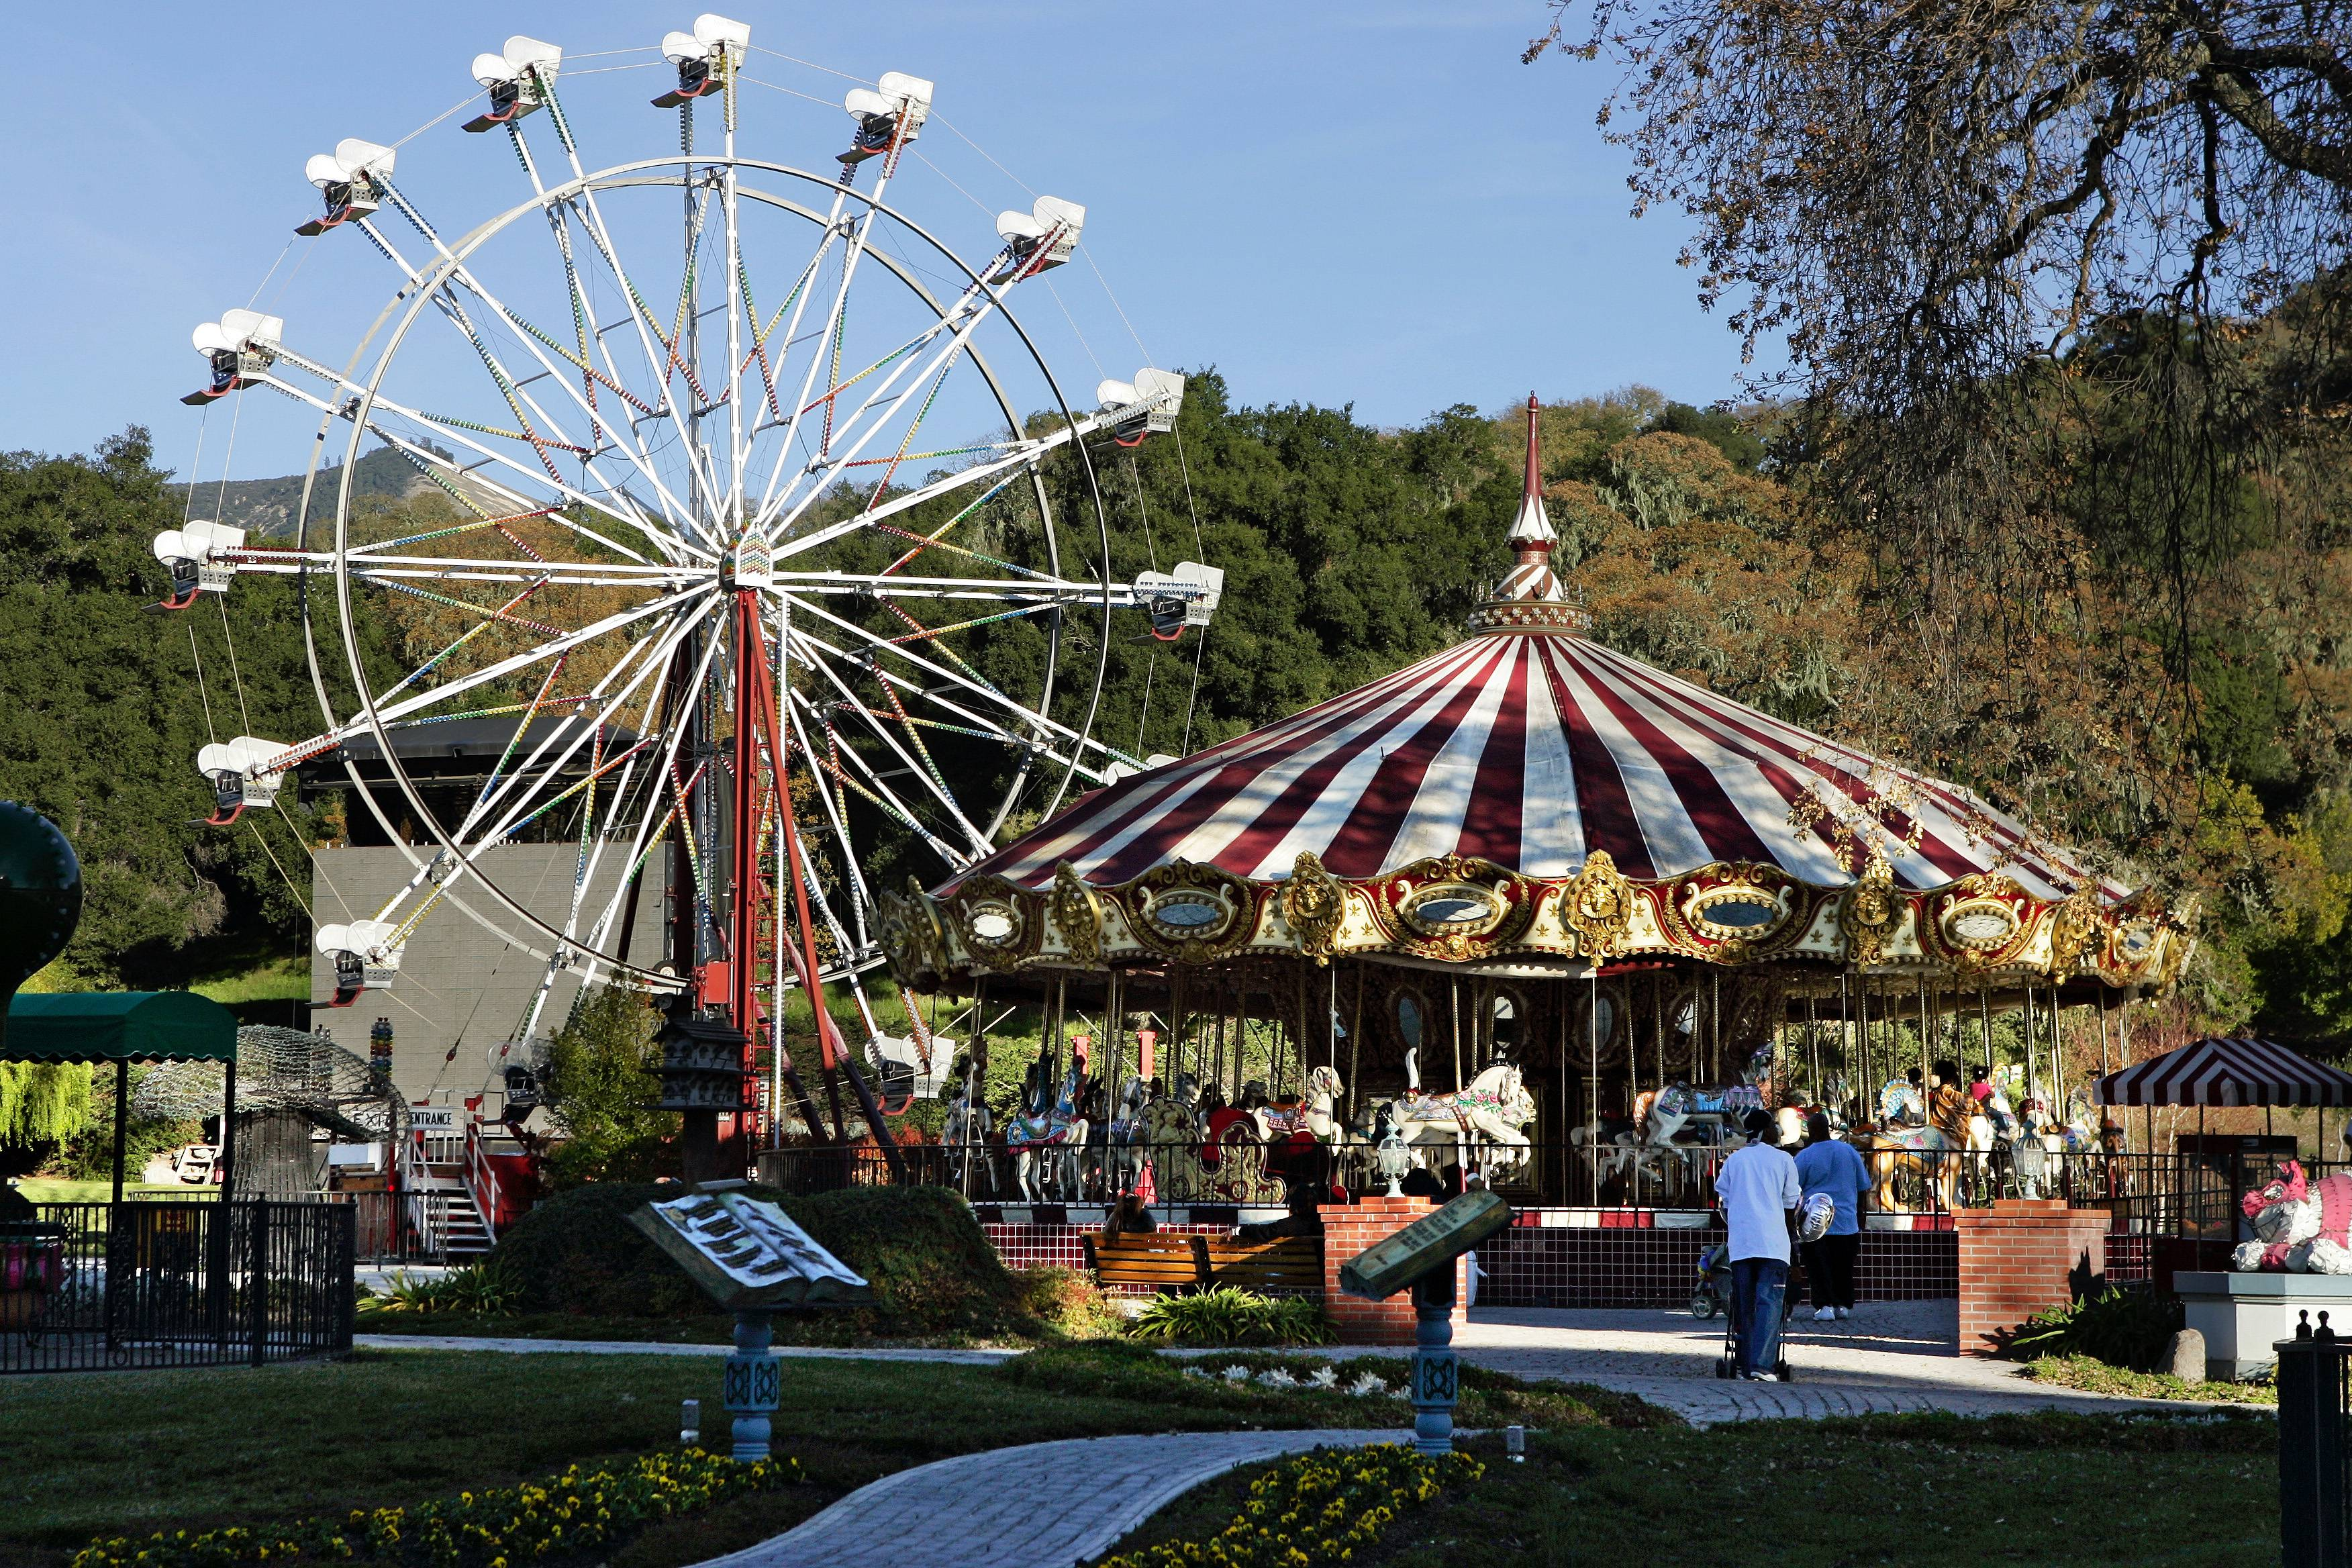 A carousel and ferris wheel dominate Michael Jackson's Neverland Ranch home in Santa Ynez, Calif. In 2014, Jackson's playtime palace sits empty now. The backyard circus and laughter of children are long gone, but the house and its fanciful memories live on.